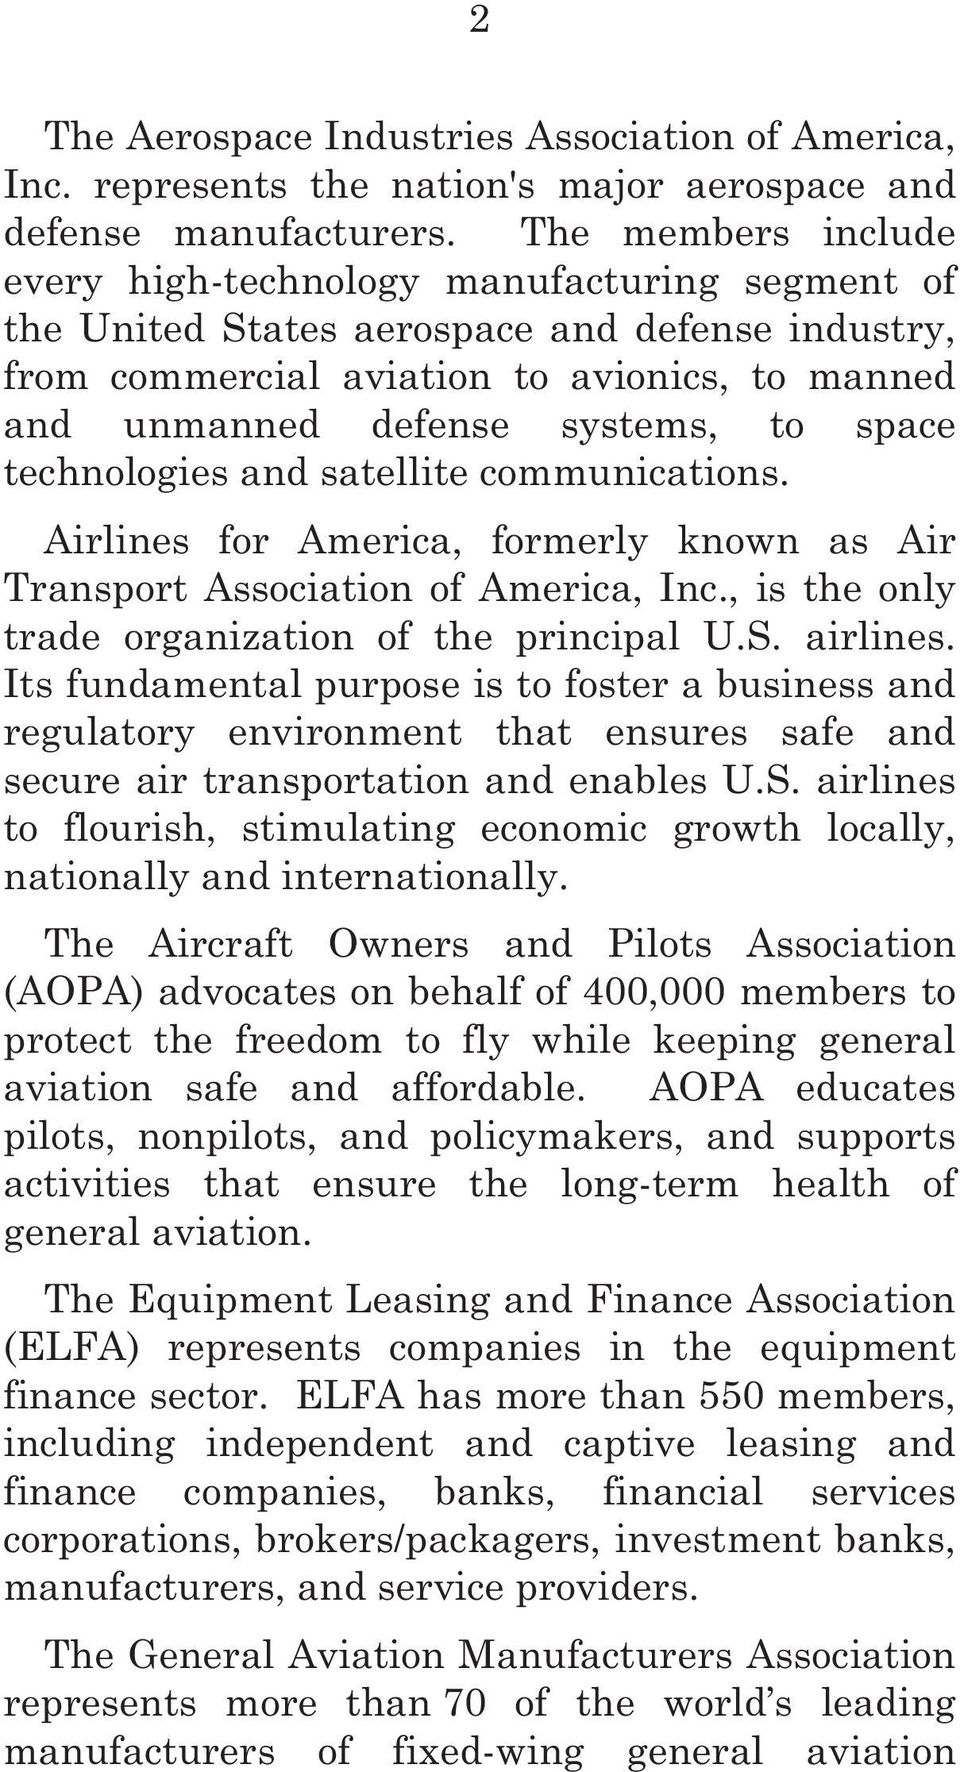 space technologies and satellite communications. Airlines for America, formerly known as Air Transport Association of America, Inc., is the only trade organization of the principal U.S. airlines.